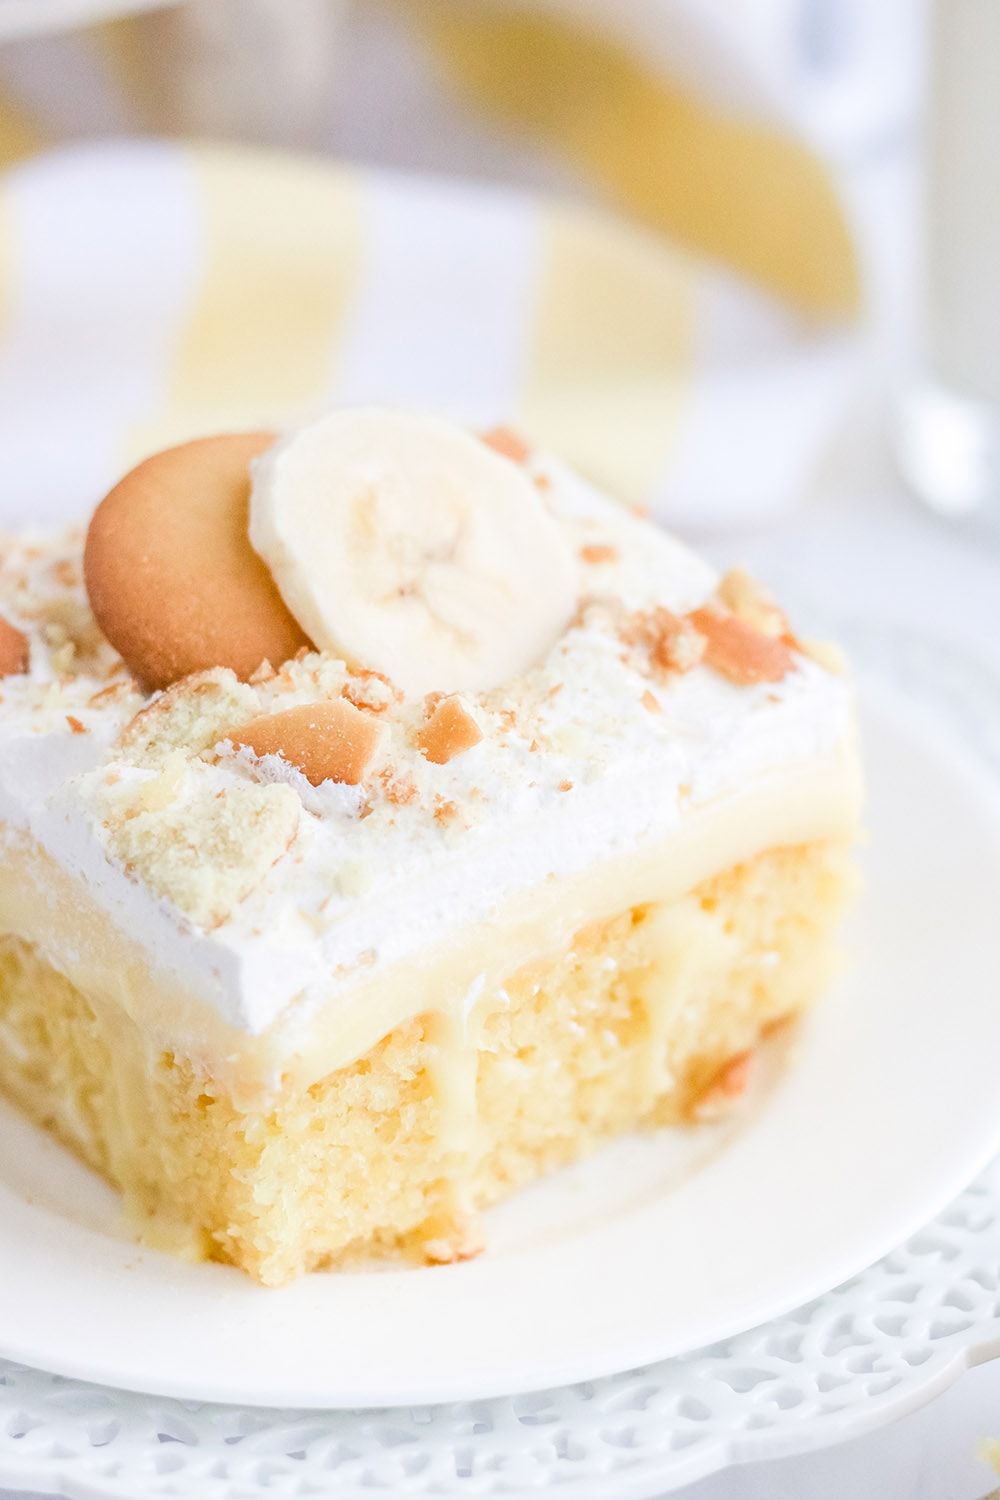 Banana cake with pudding topped with whipped cream and nilla wafers.